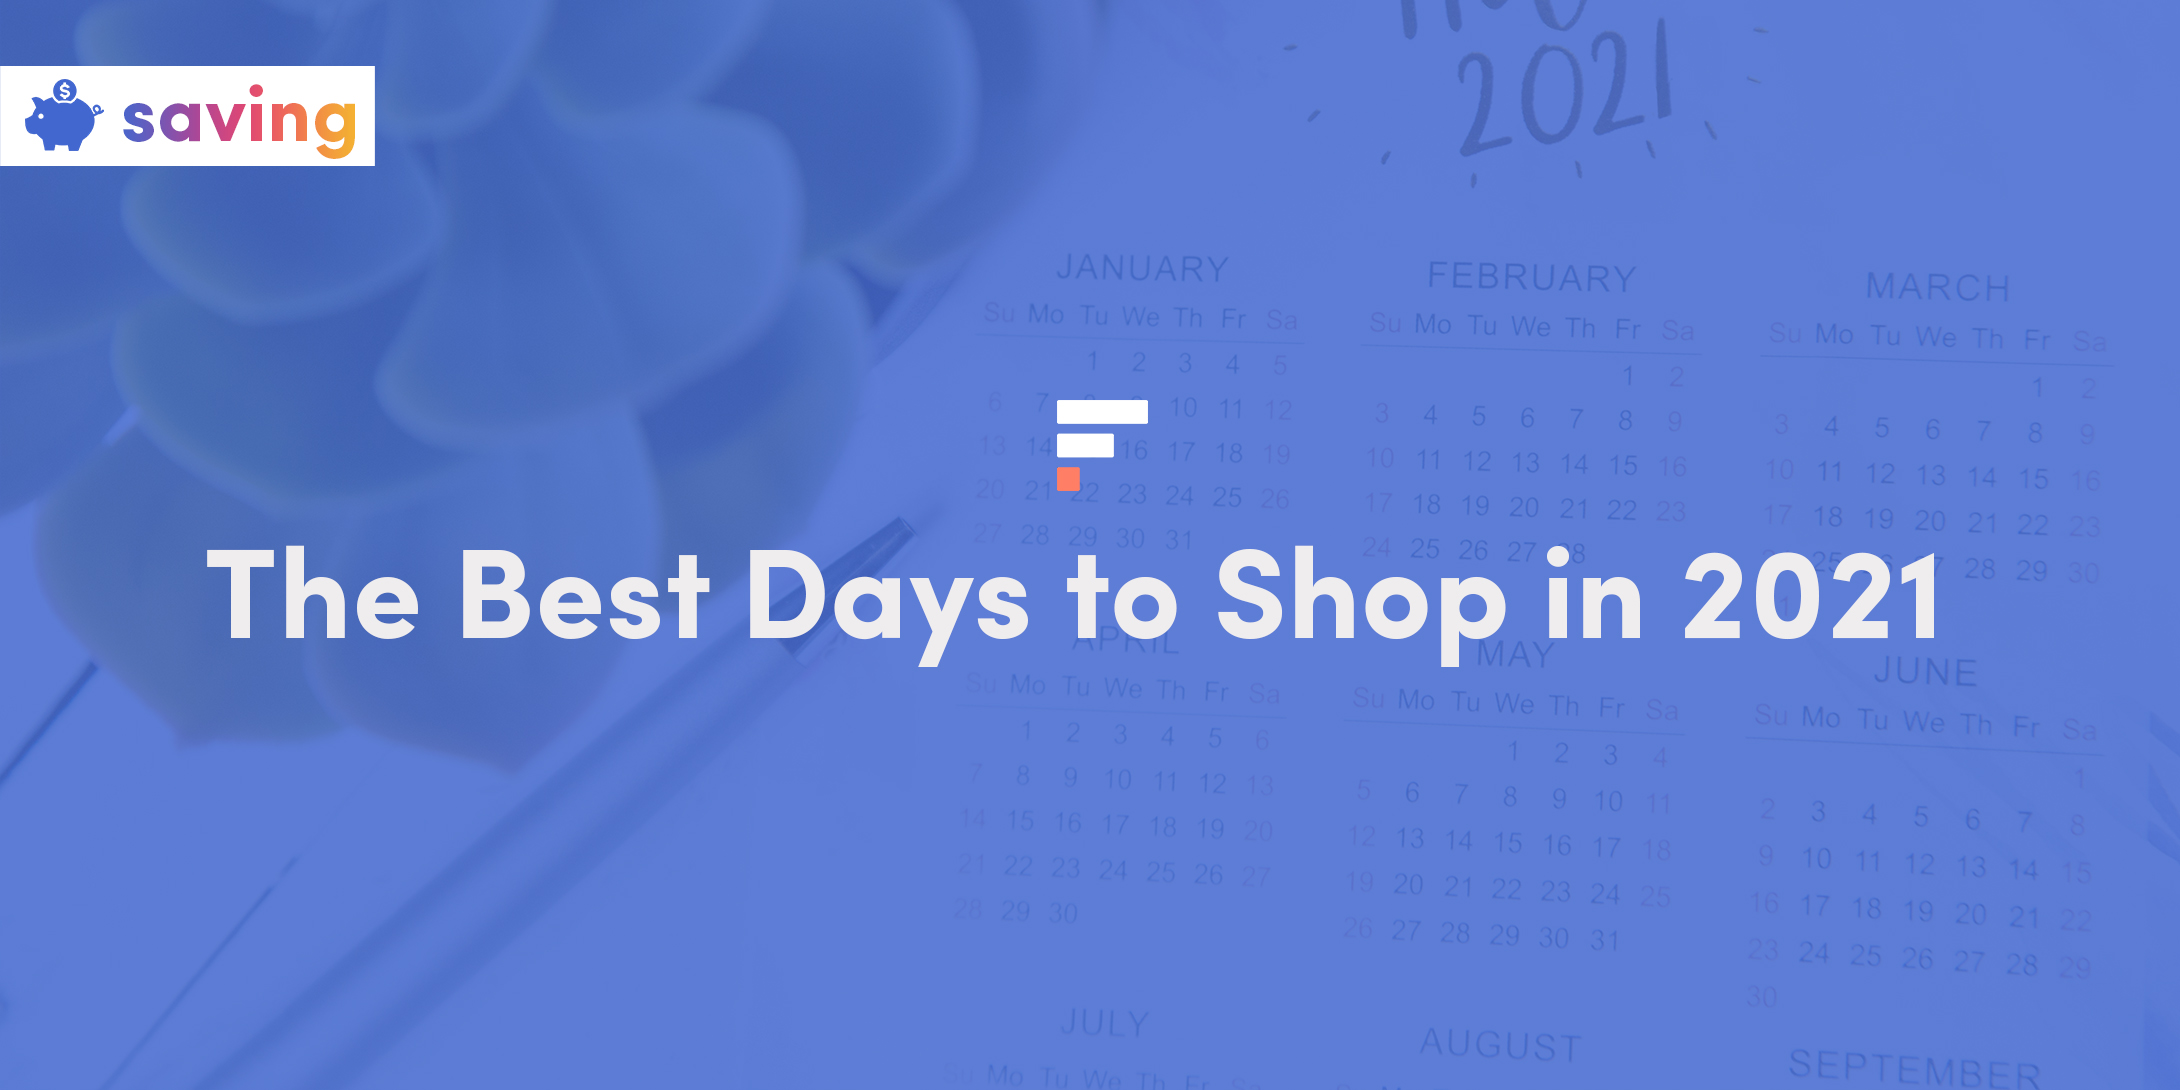 The Best Days to Shop in 2021